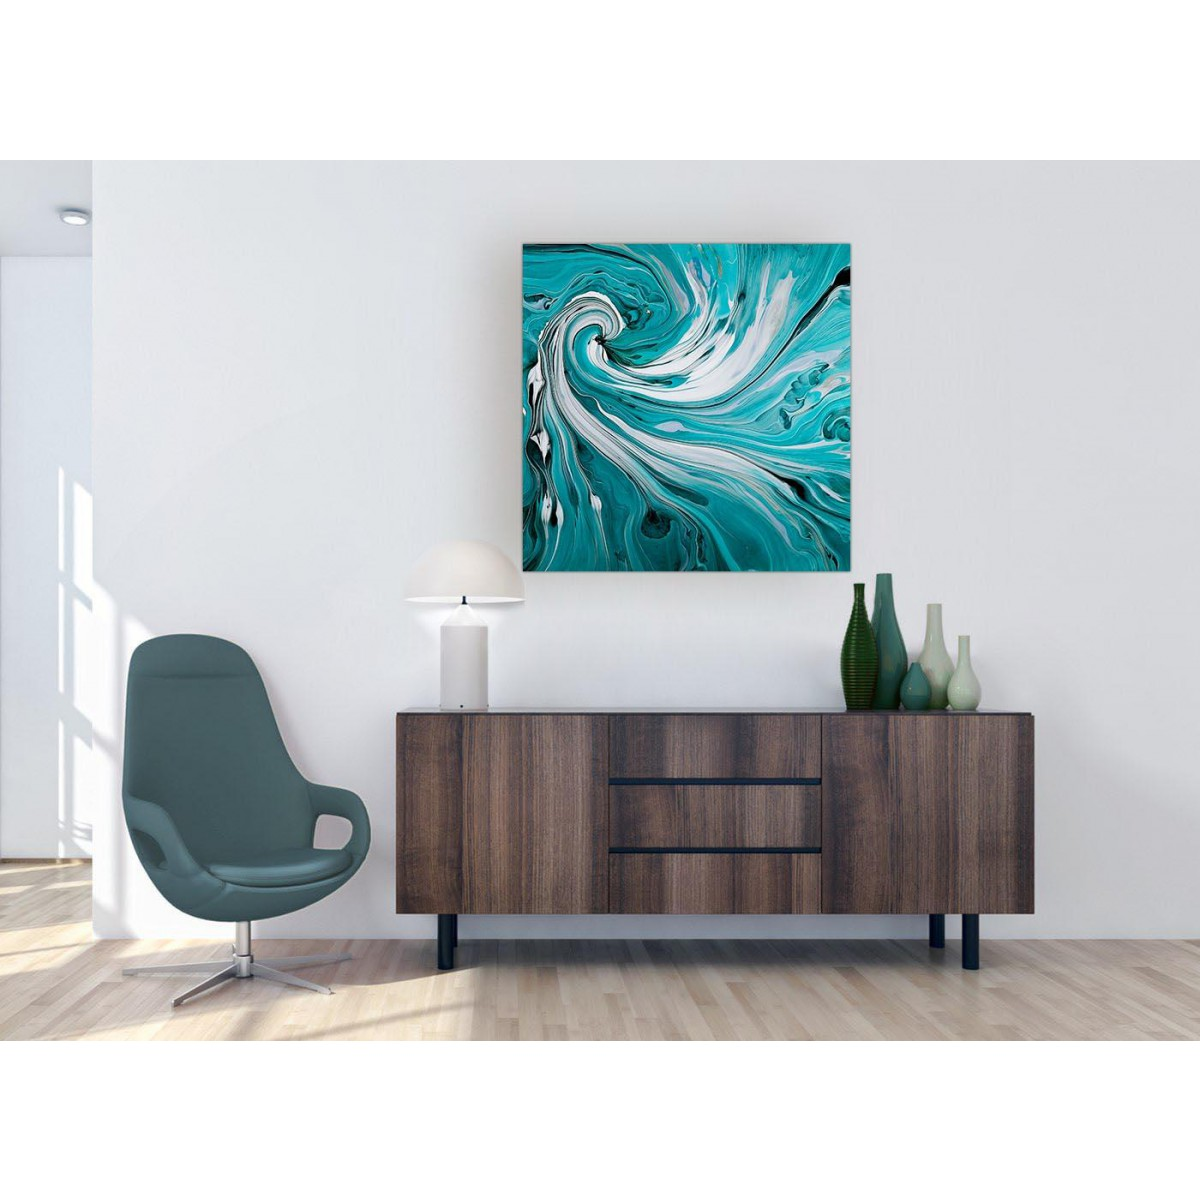 Extra Large Teal Spiral Swirl Abstract Canvas Modern